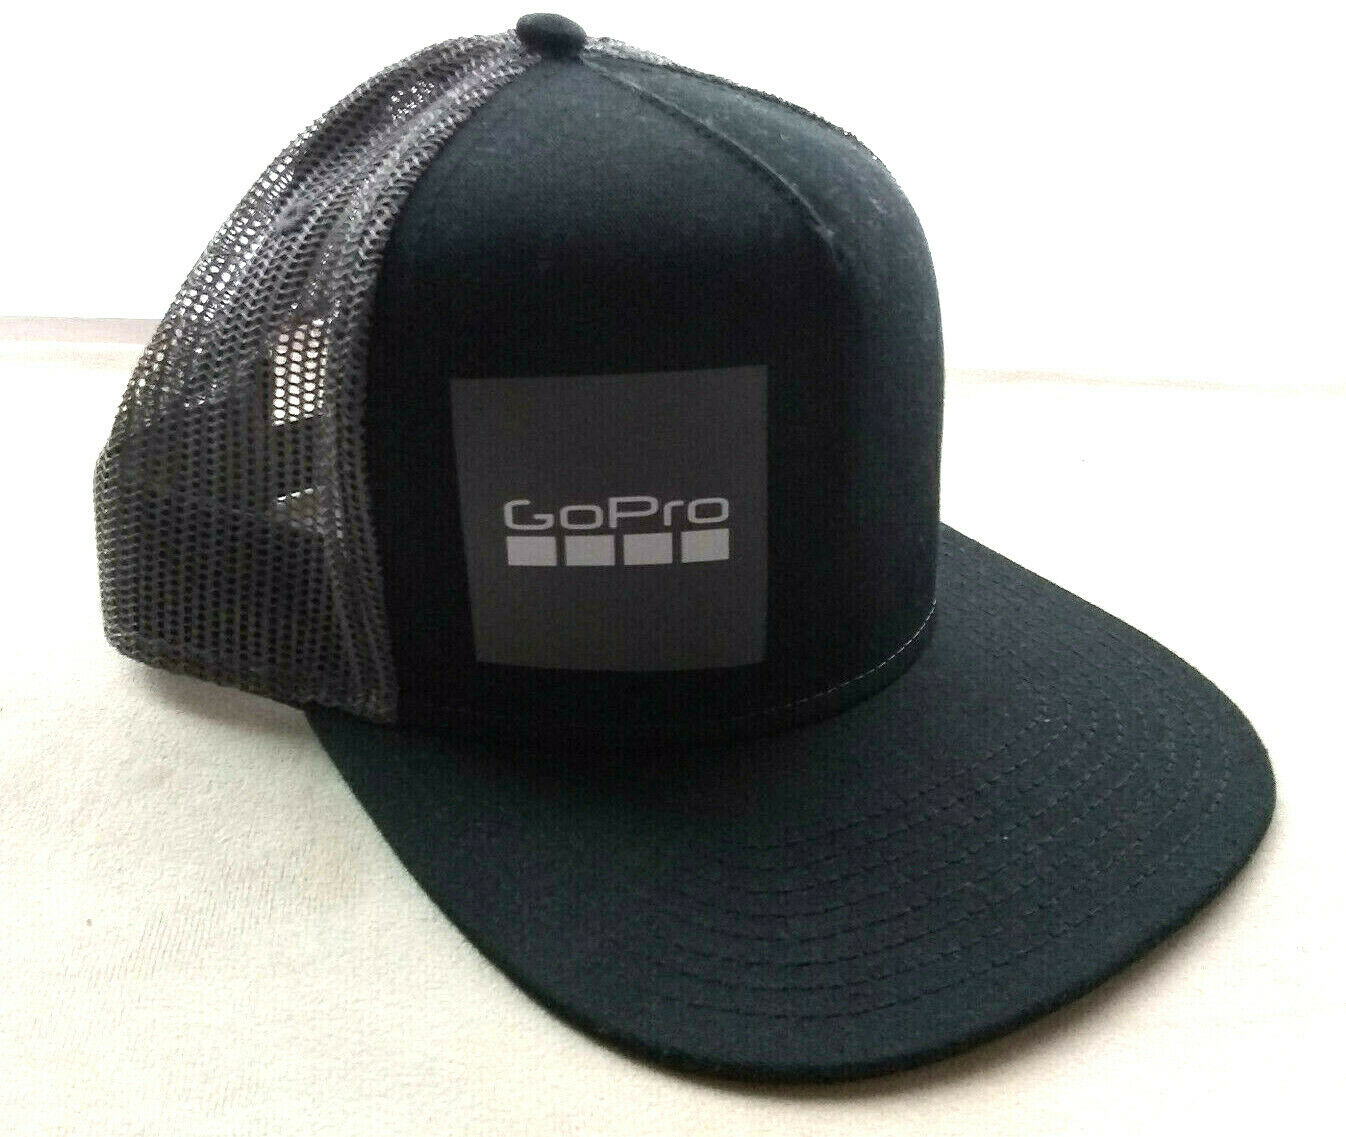 GoPro Otto Premium Snapback Trucker Hat Baseball Cap Great Gift Idea